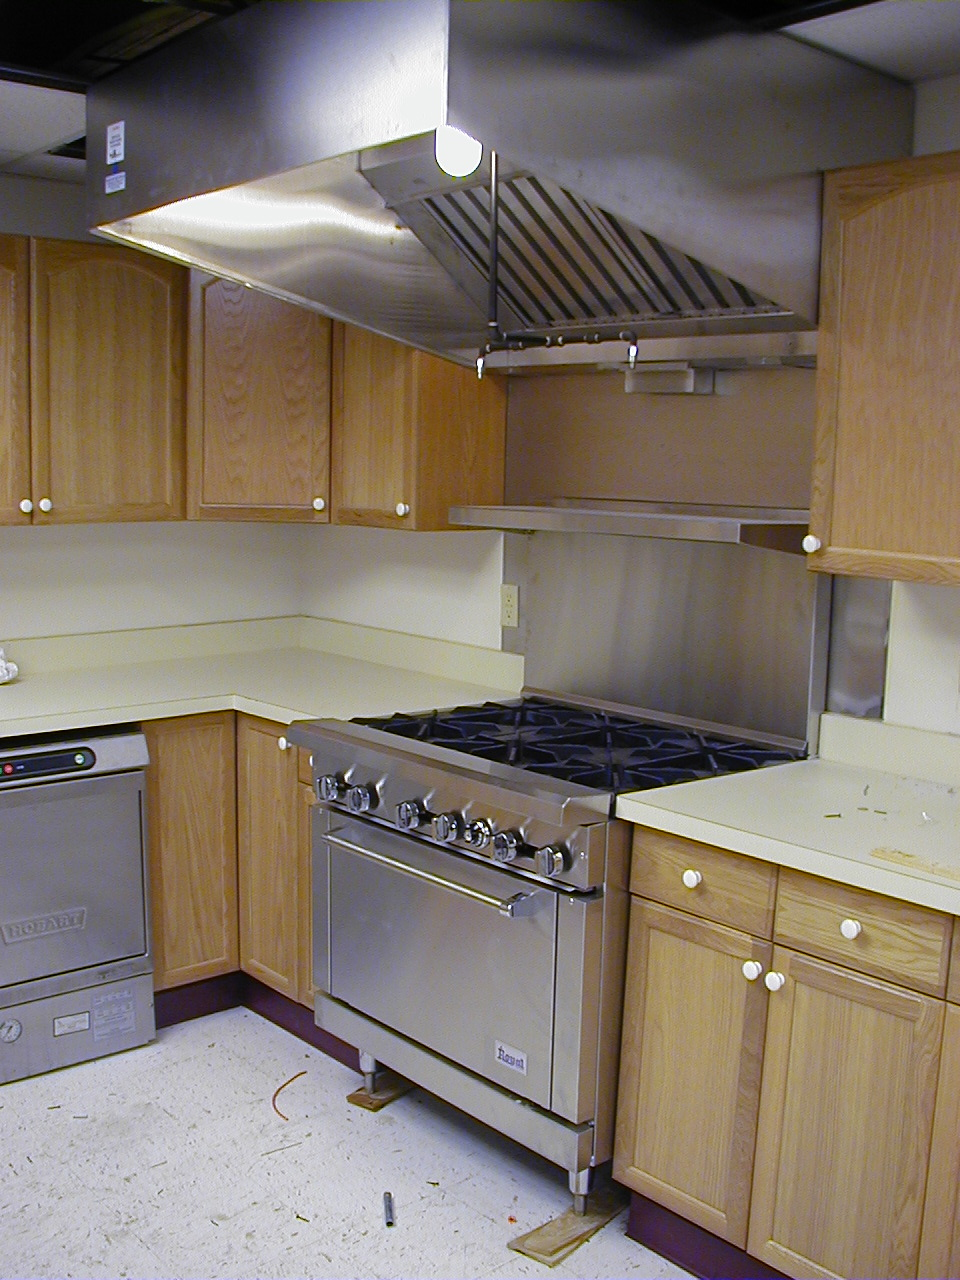 View of commercial kitchen electrical power and lighting installation       Click to return to photo page!